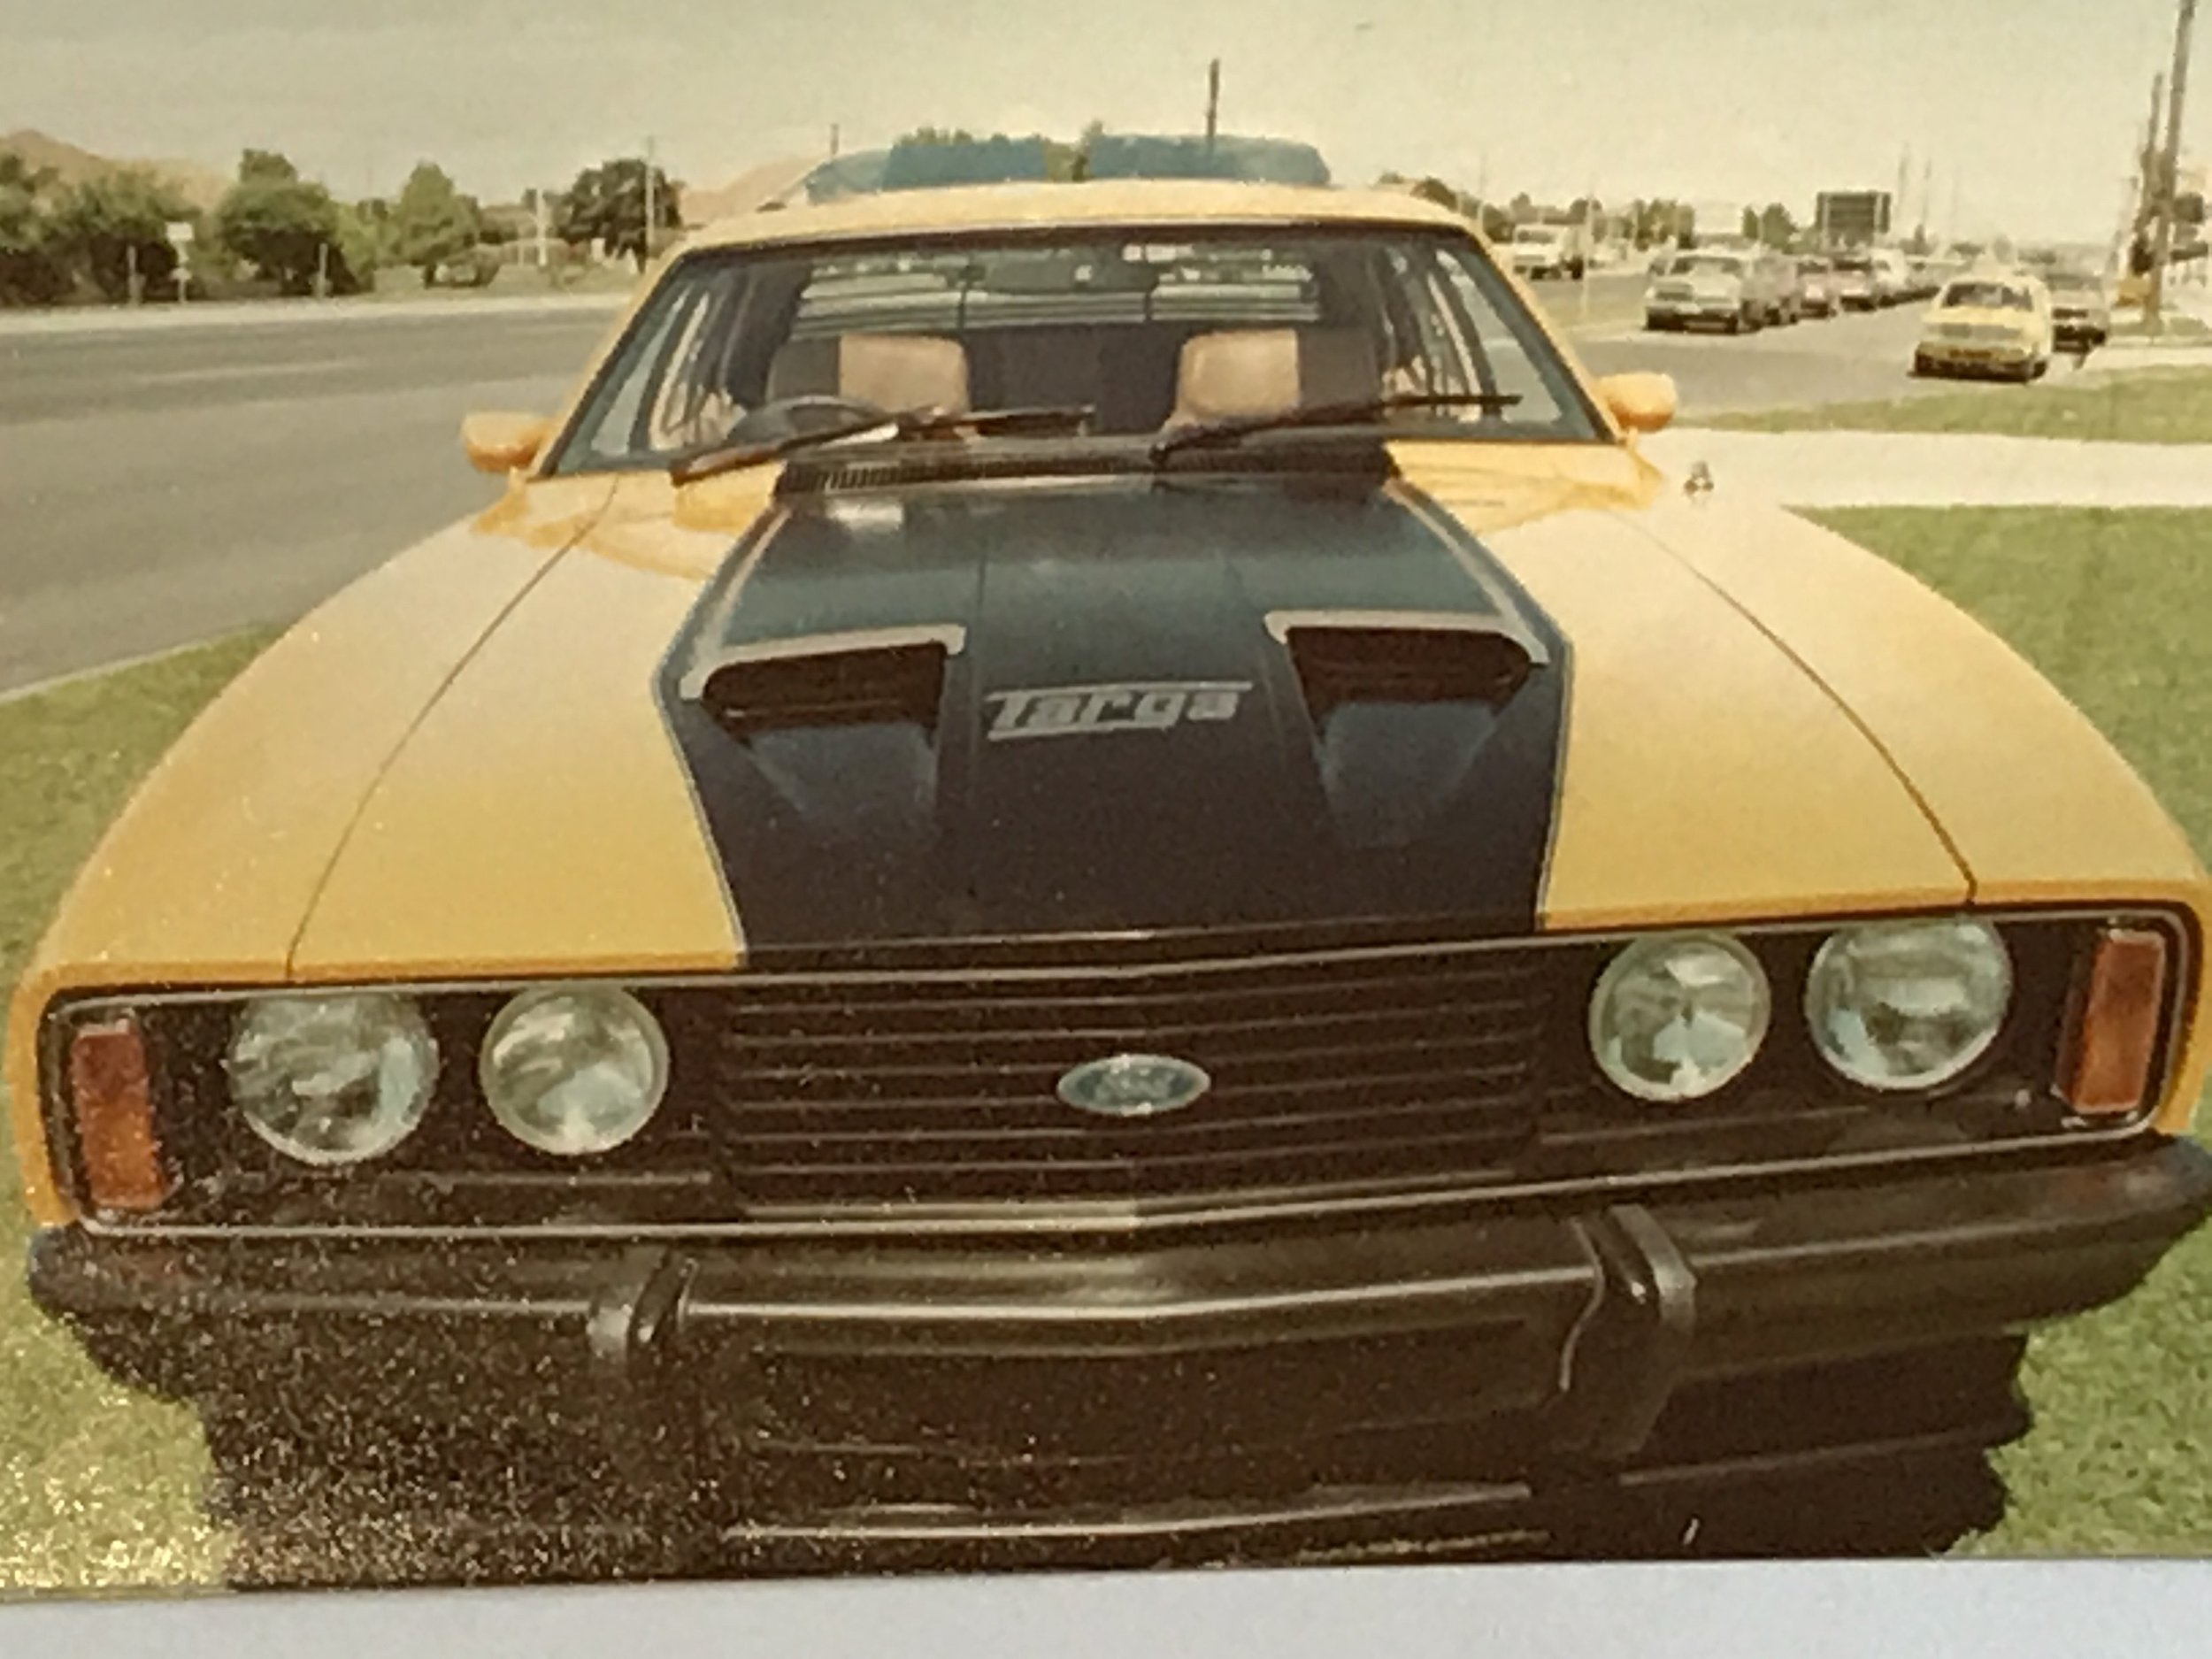 Retyled Ford falcon 1970-mid 80s